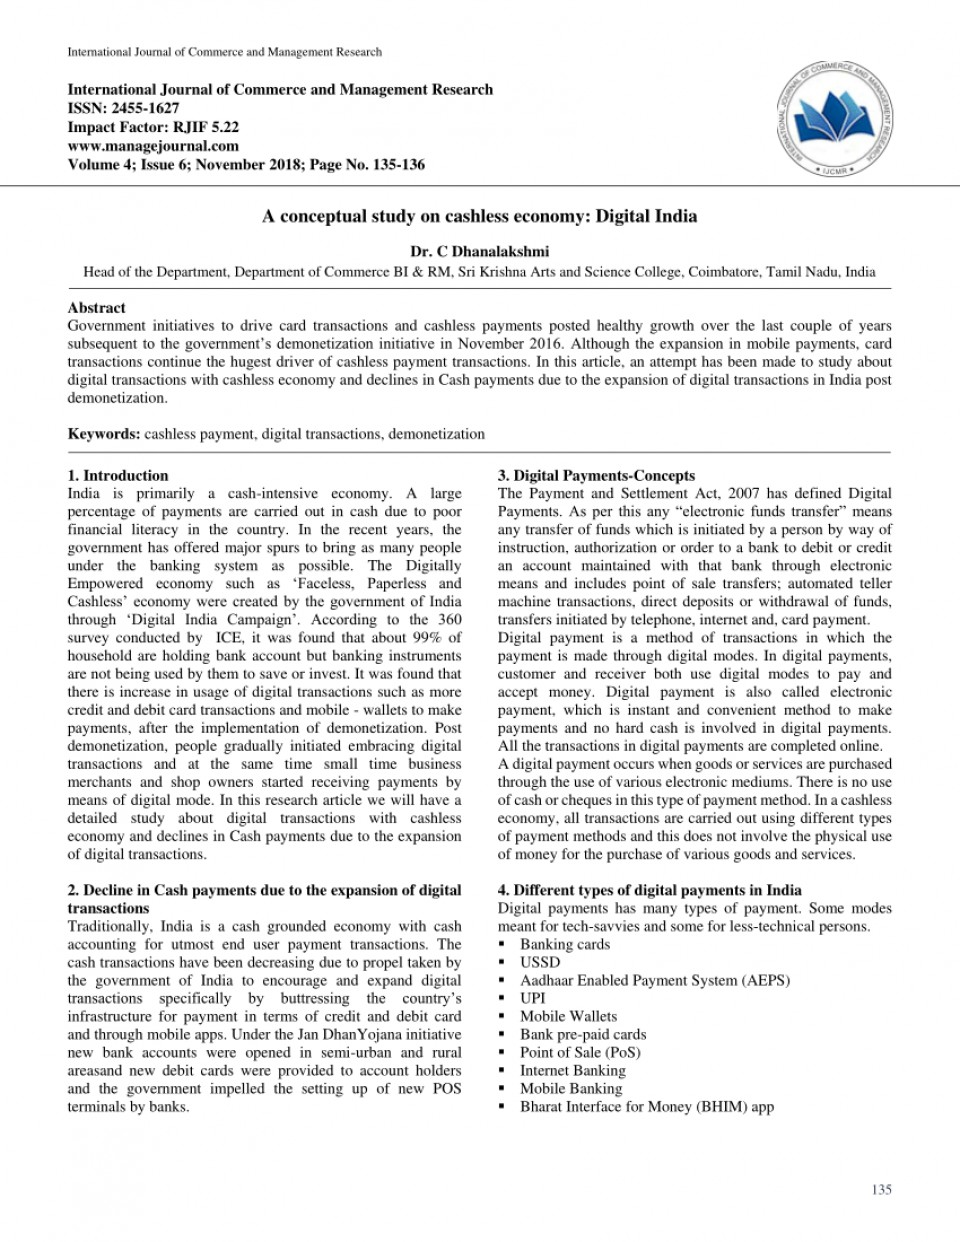 014 Cash To Cashless Economy Research Paper Rare 960